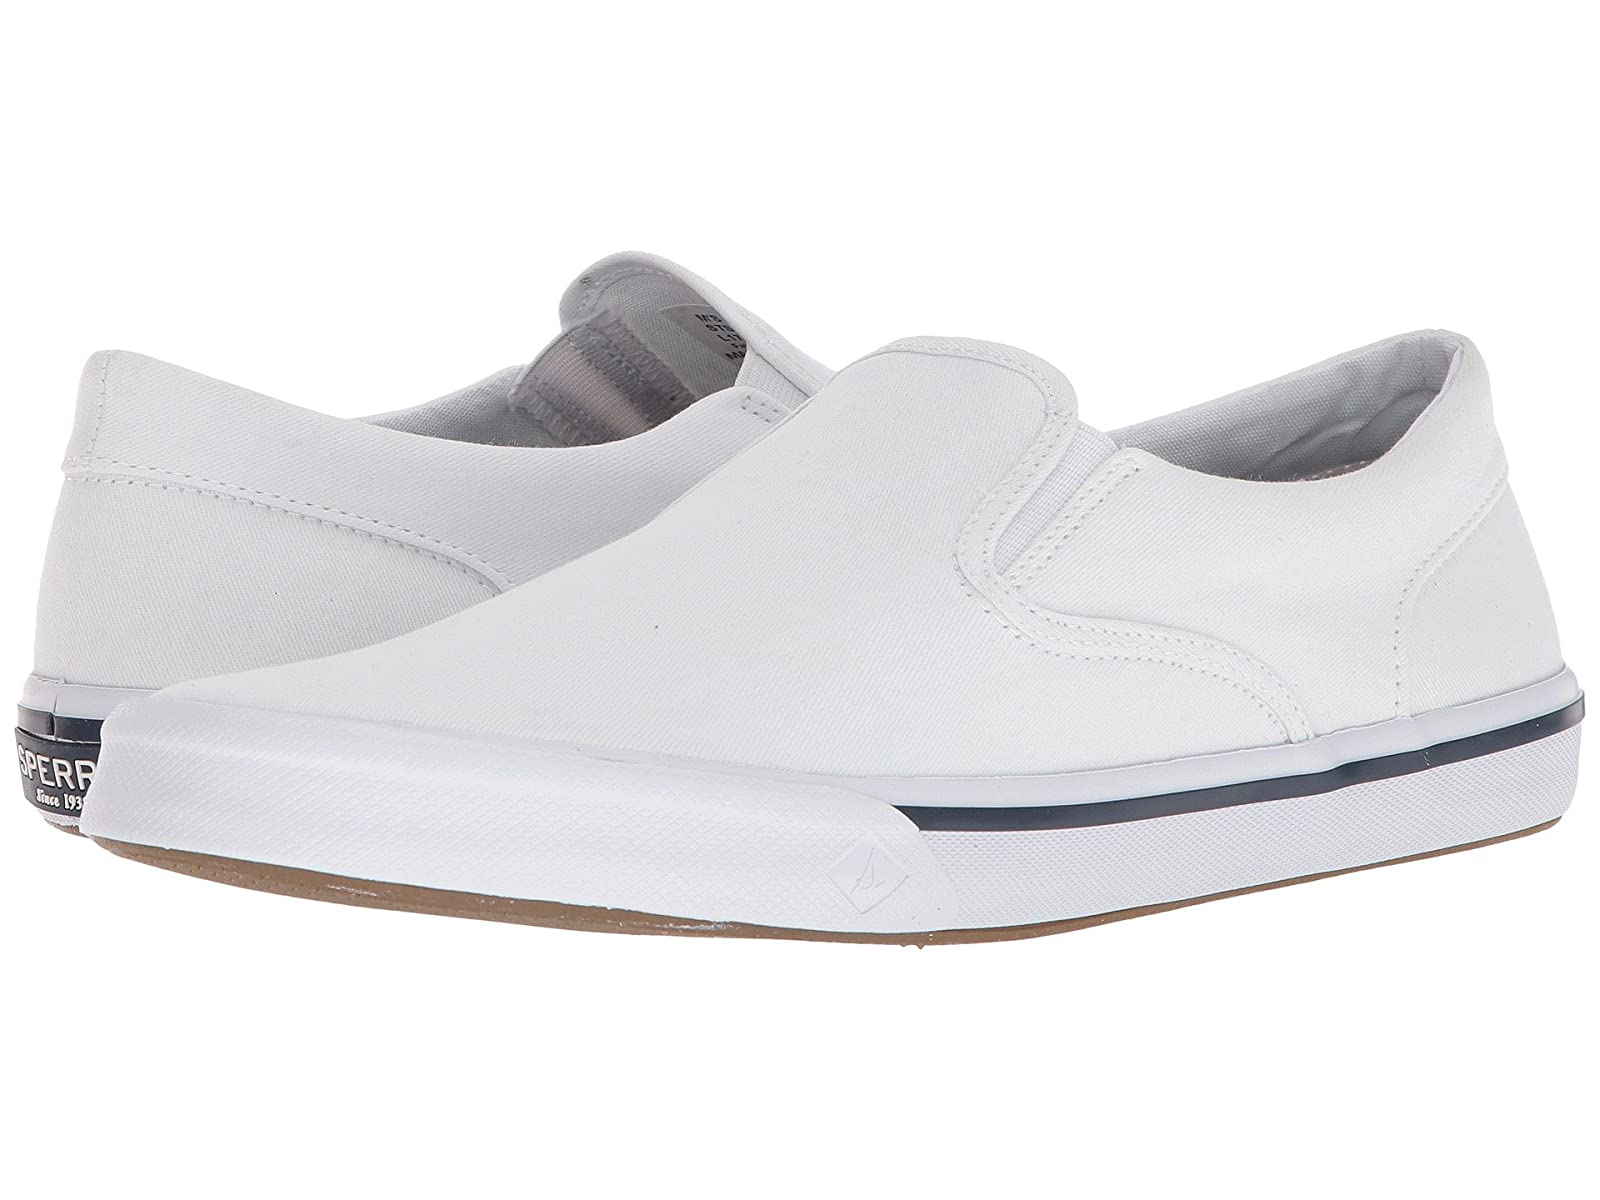 Sperry Striper II Twin GoreAtmospheric grades have affordable shoes